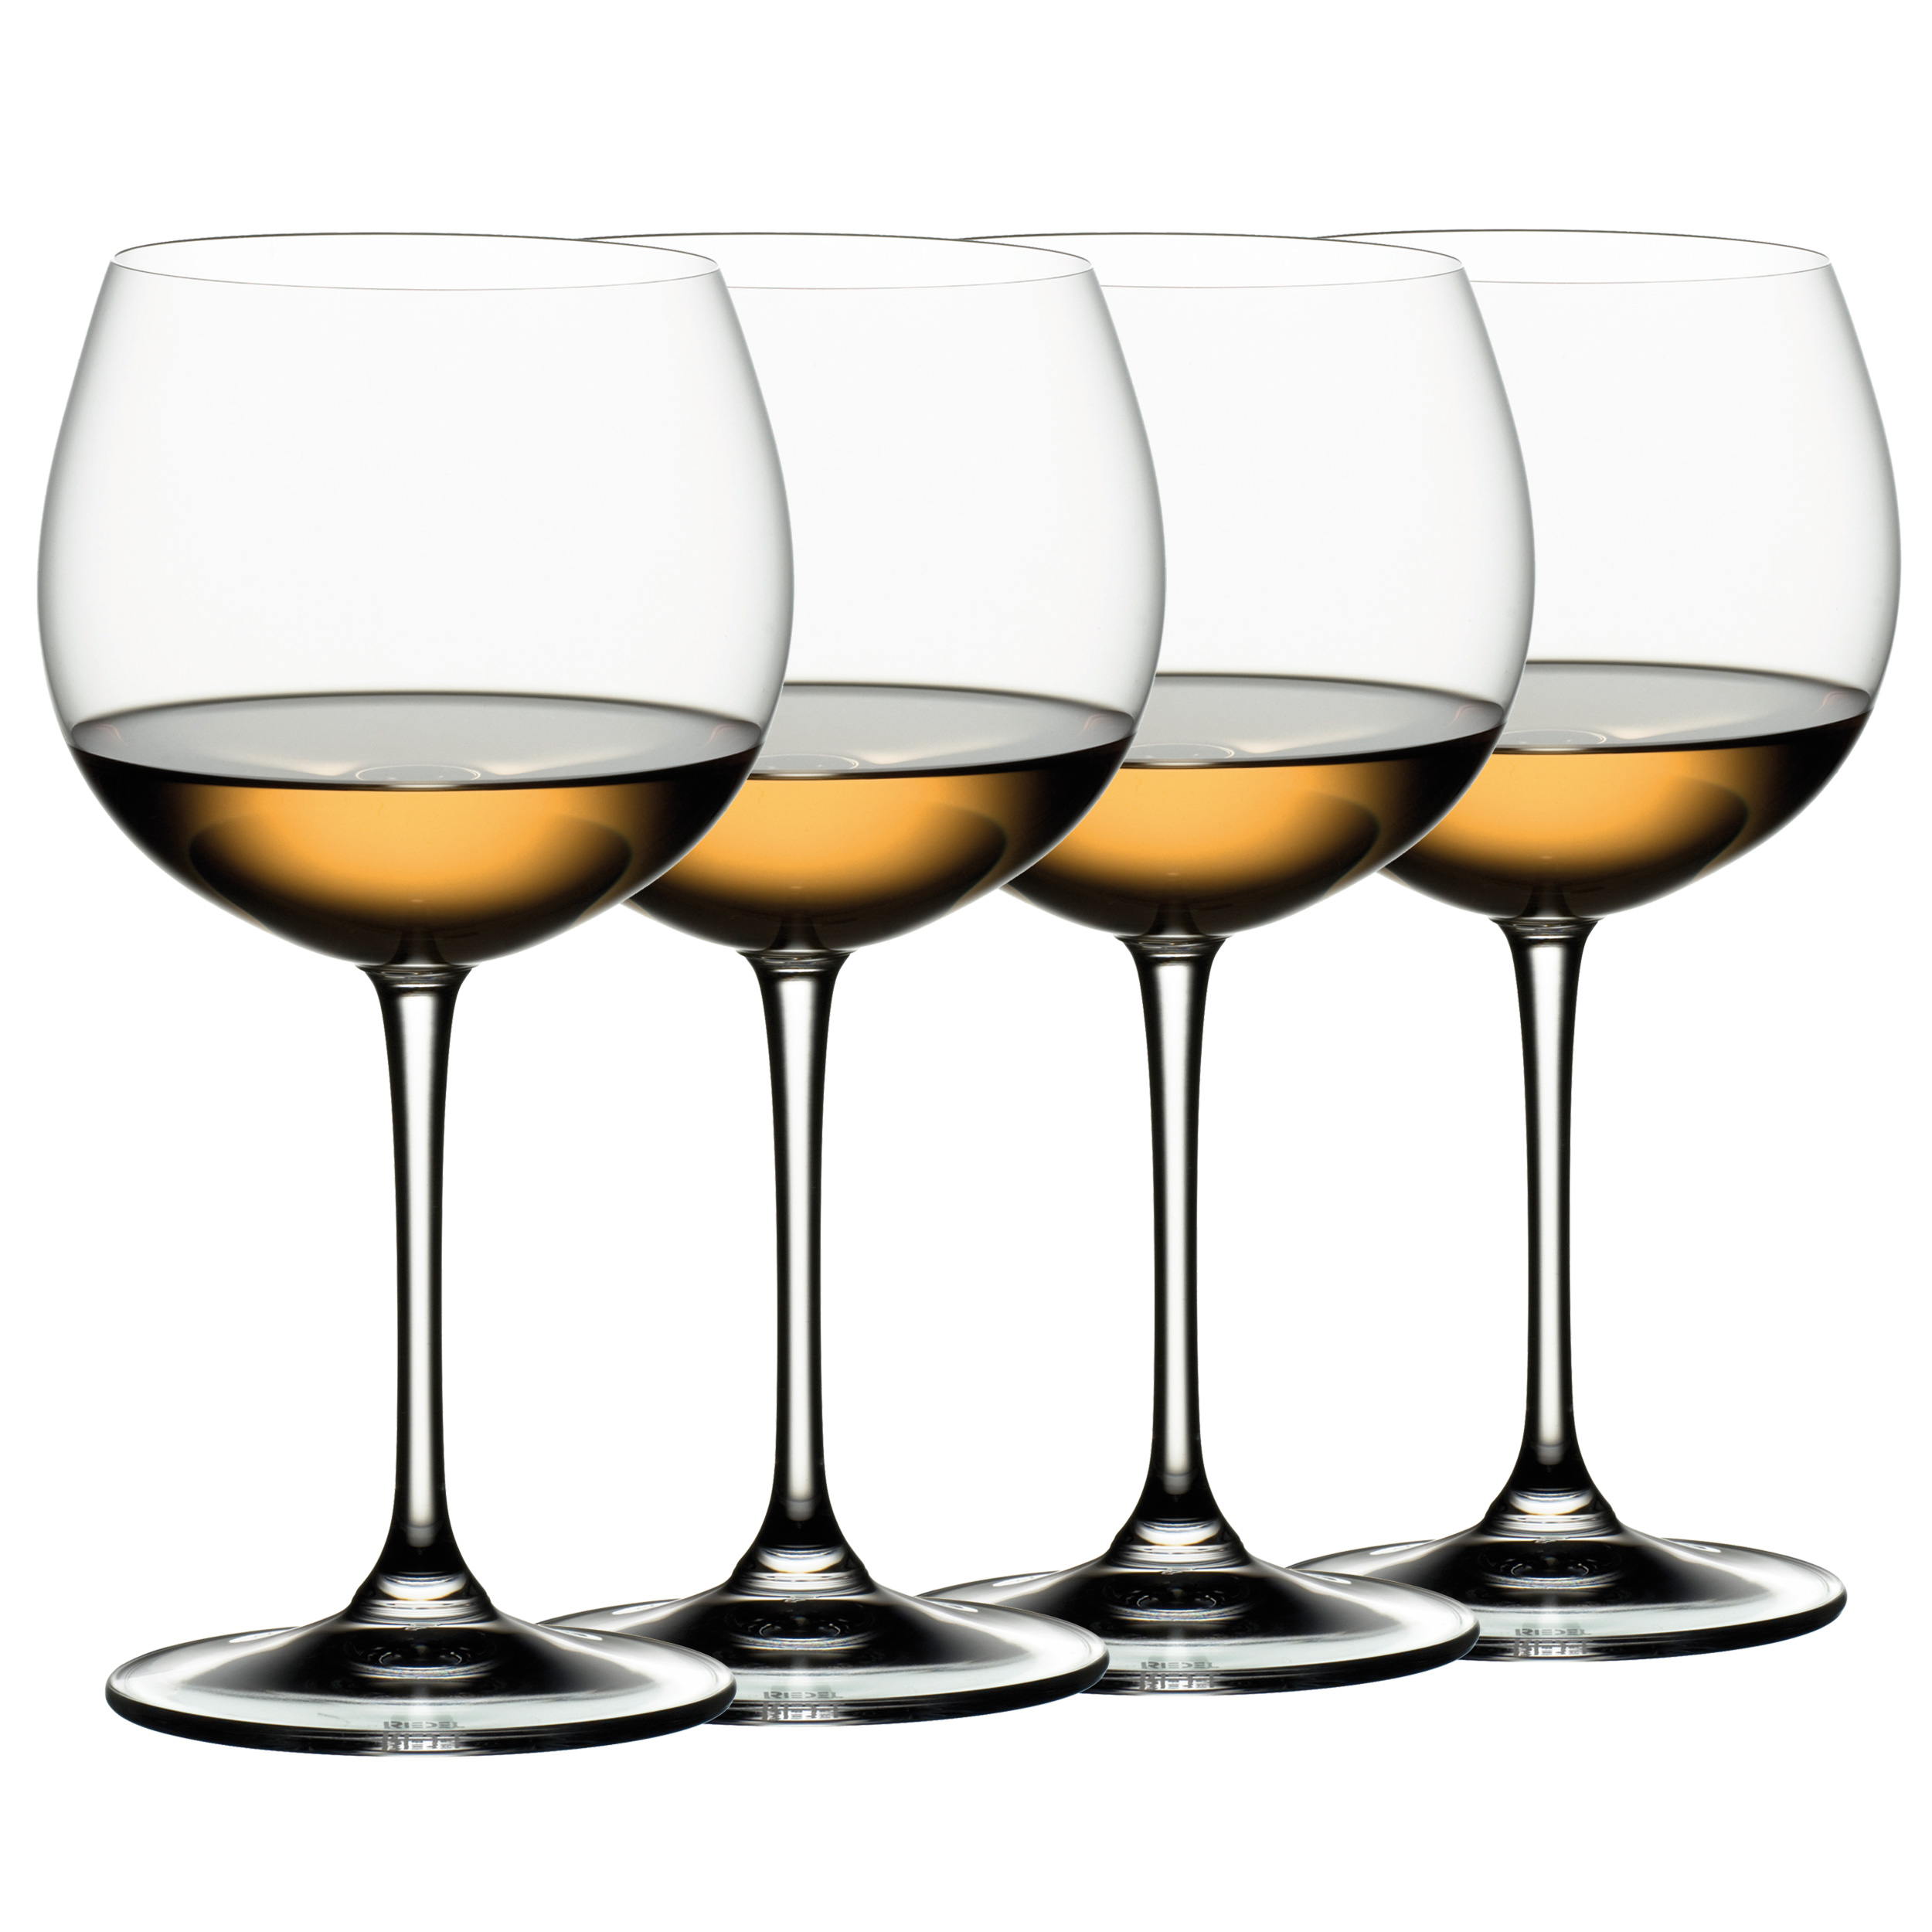 Riedel Glas Riedel Vinum Xl Oaked Chardonnay White Wine Glass Pay 3 And Get 4 552ml 4 Pieces 7416 57 At About Tea De Shop